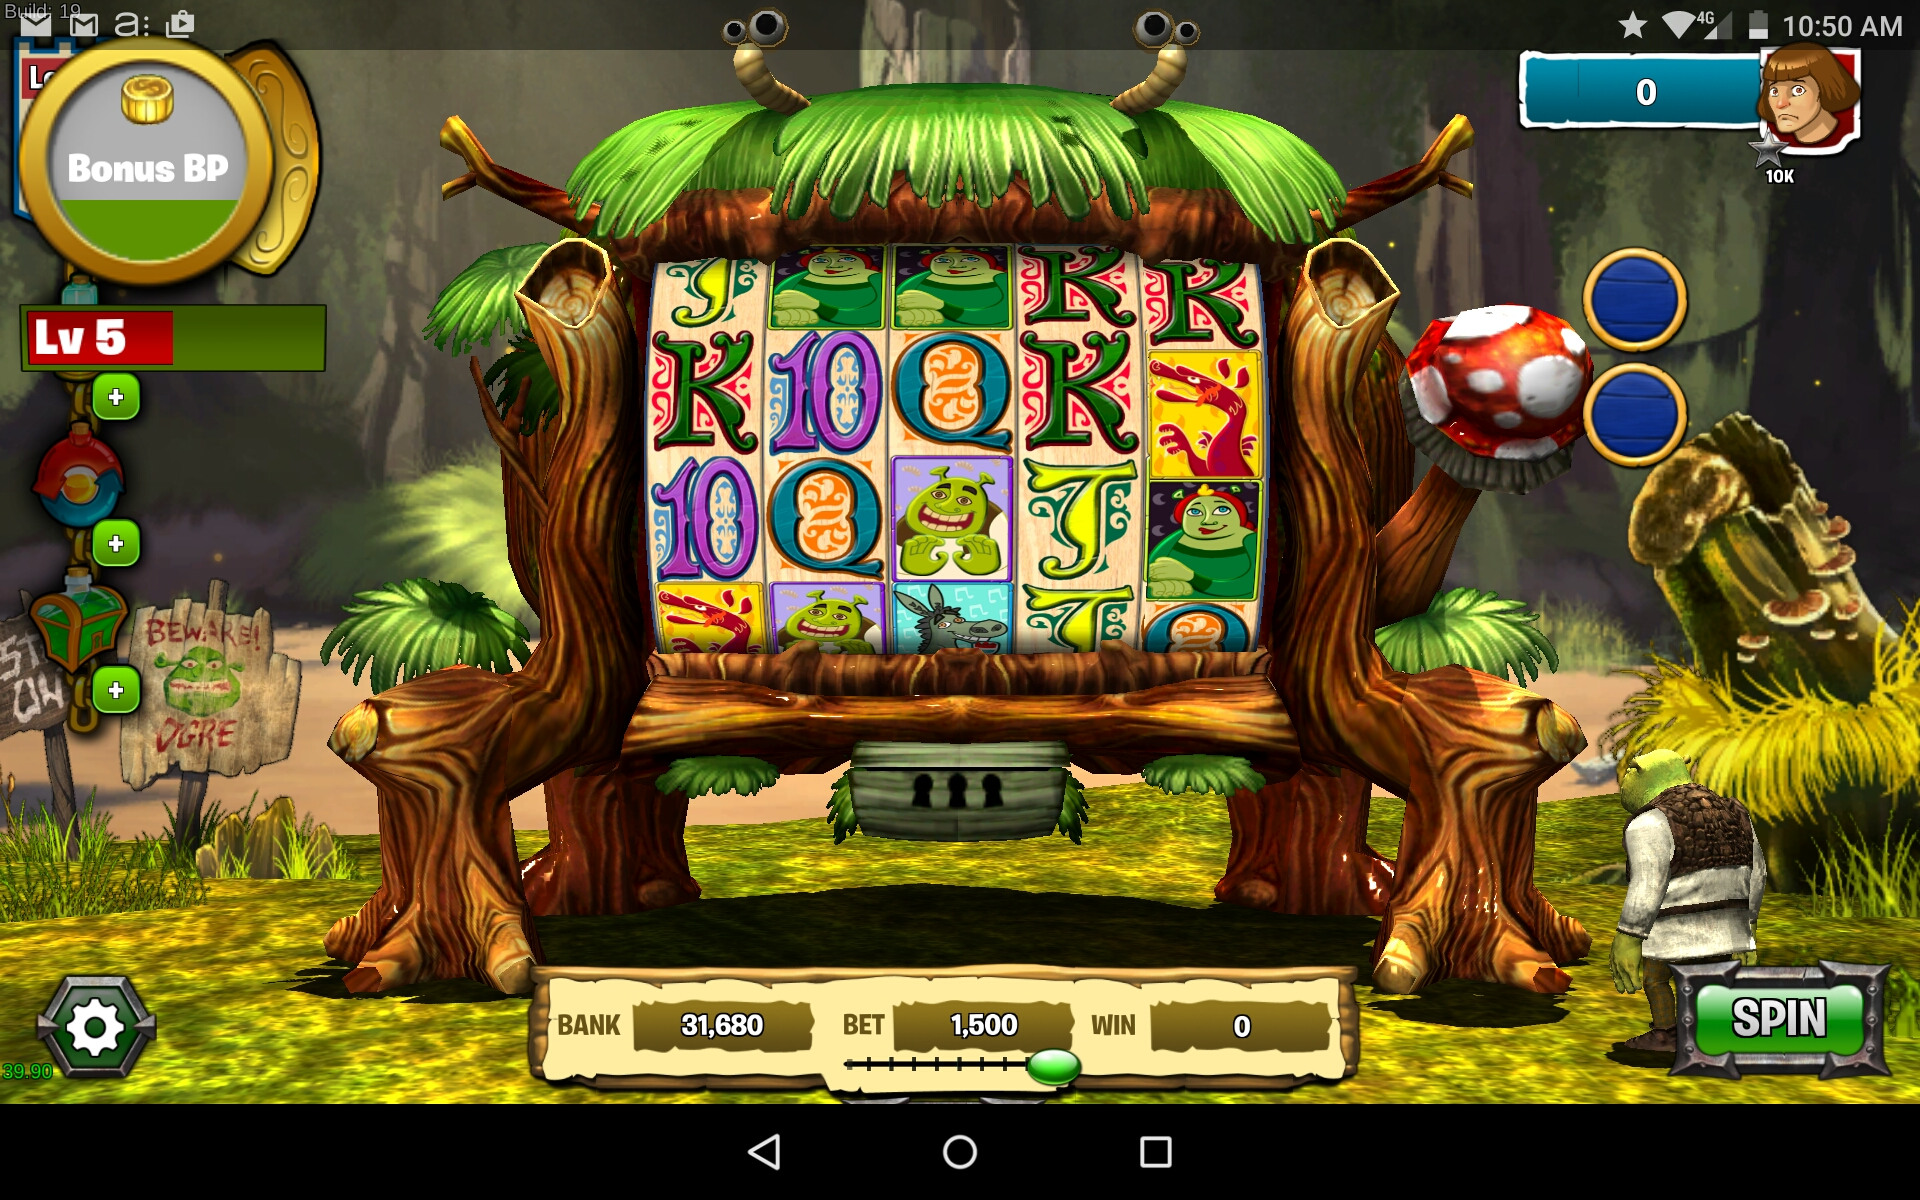 Shrek Vs Slots_20150319_105041